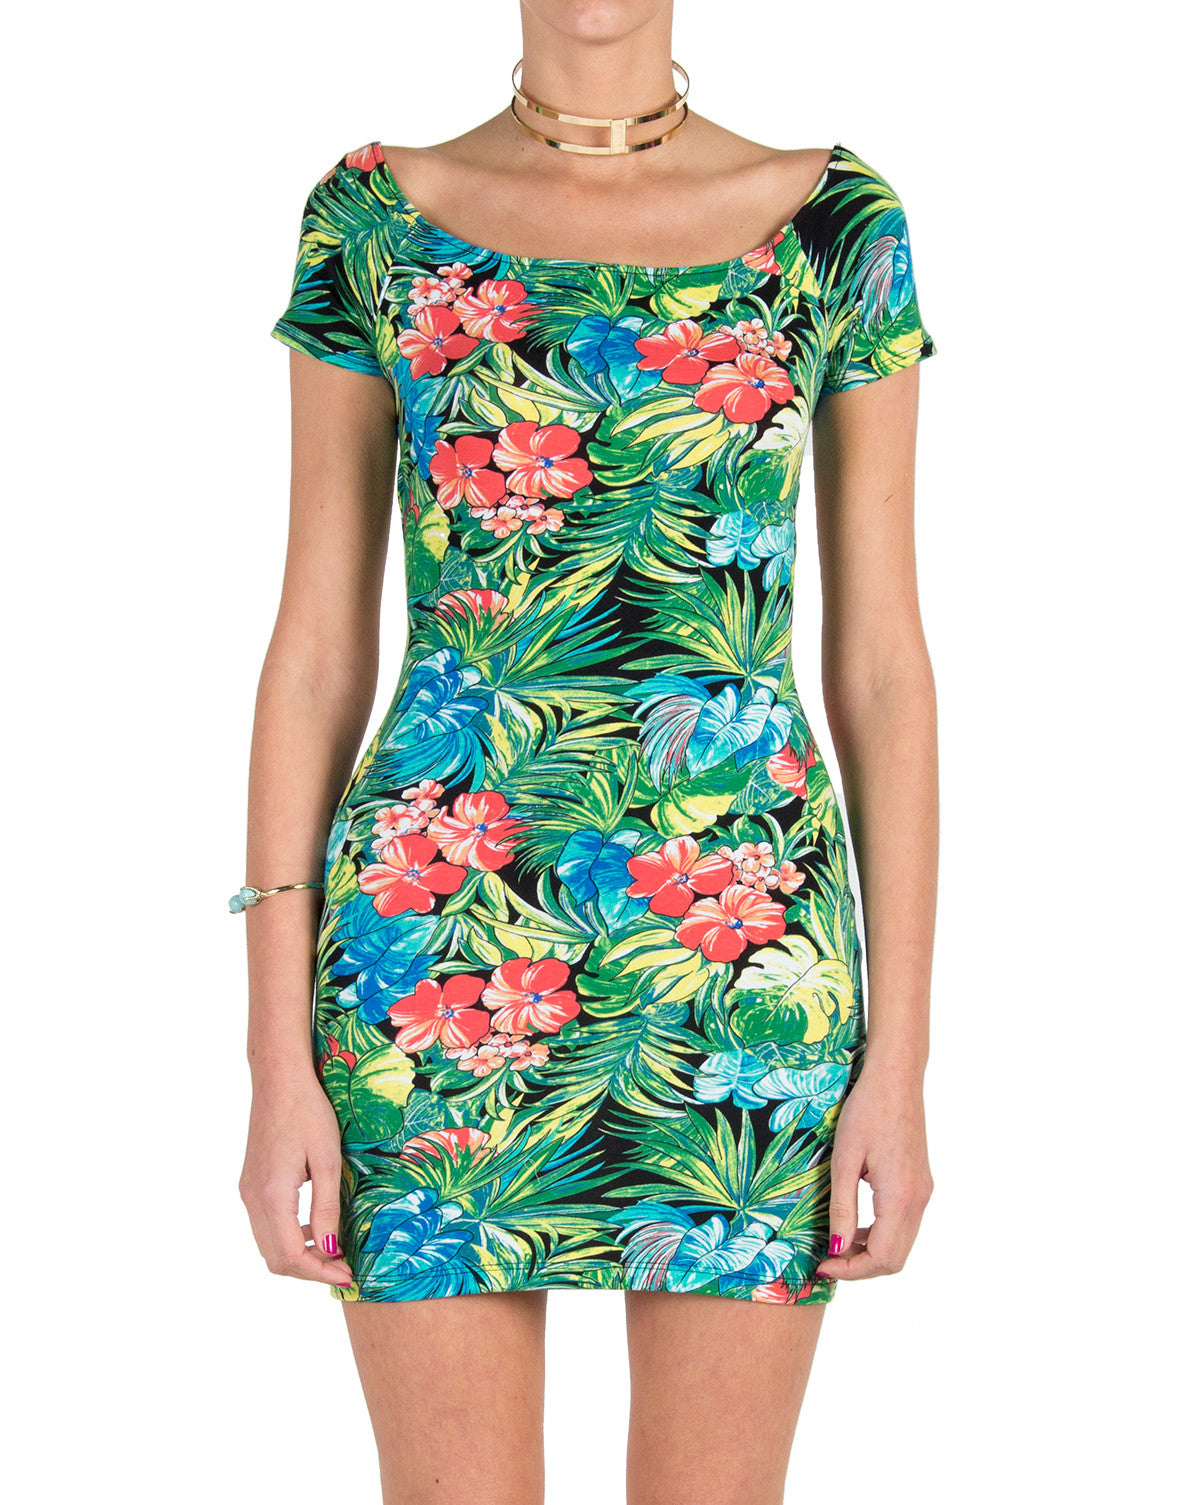 Lush Clothing - Tropical Cross Back Mini Dress